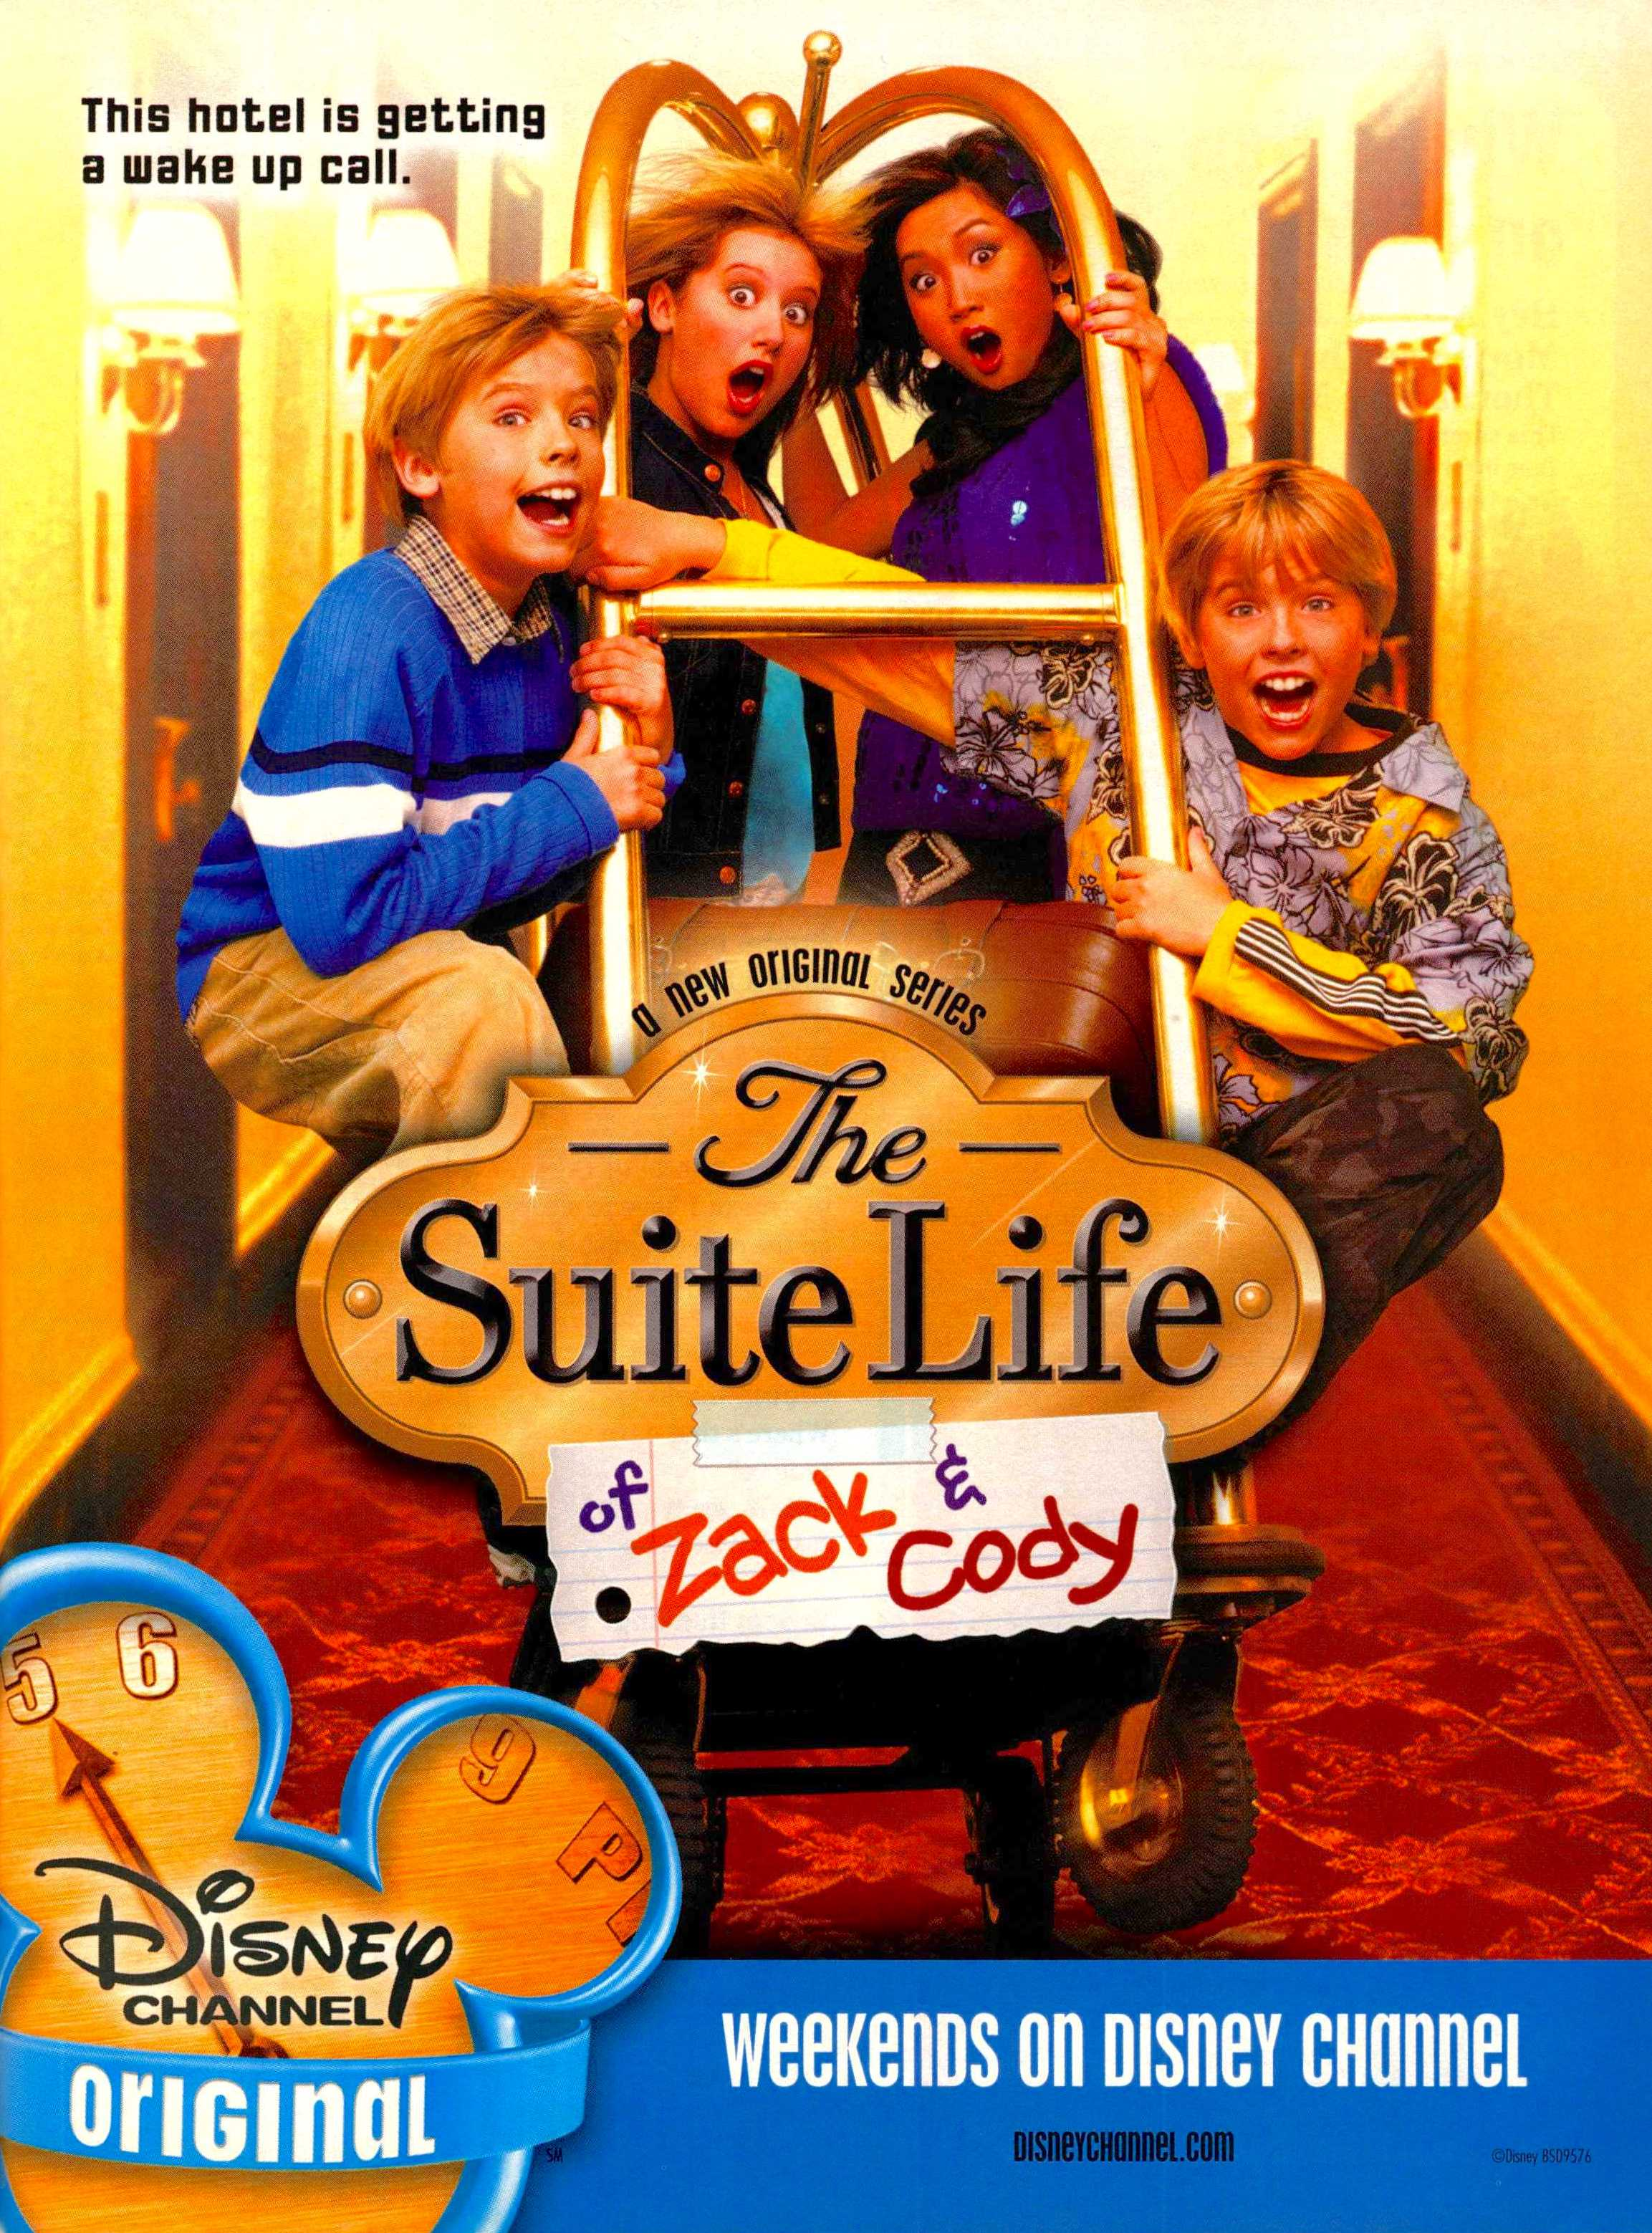 Suite life of zack and cody all seasons torrent download pc